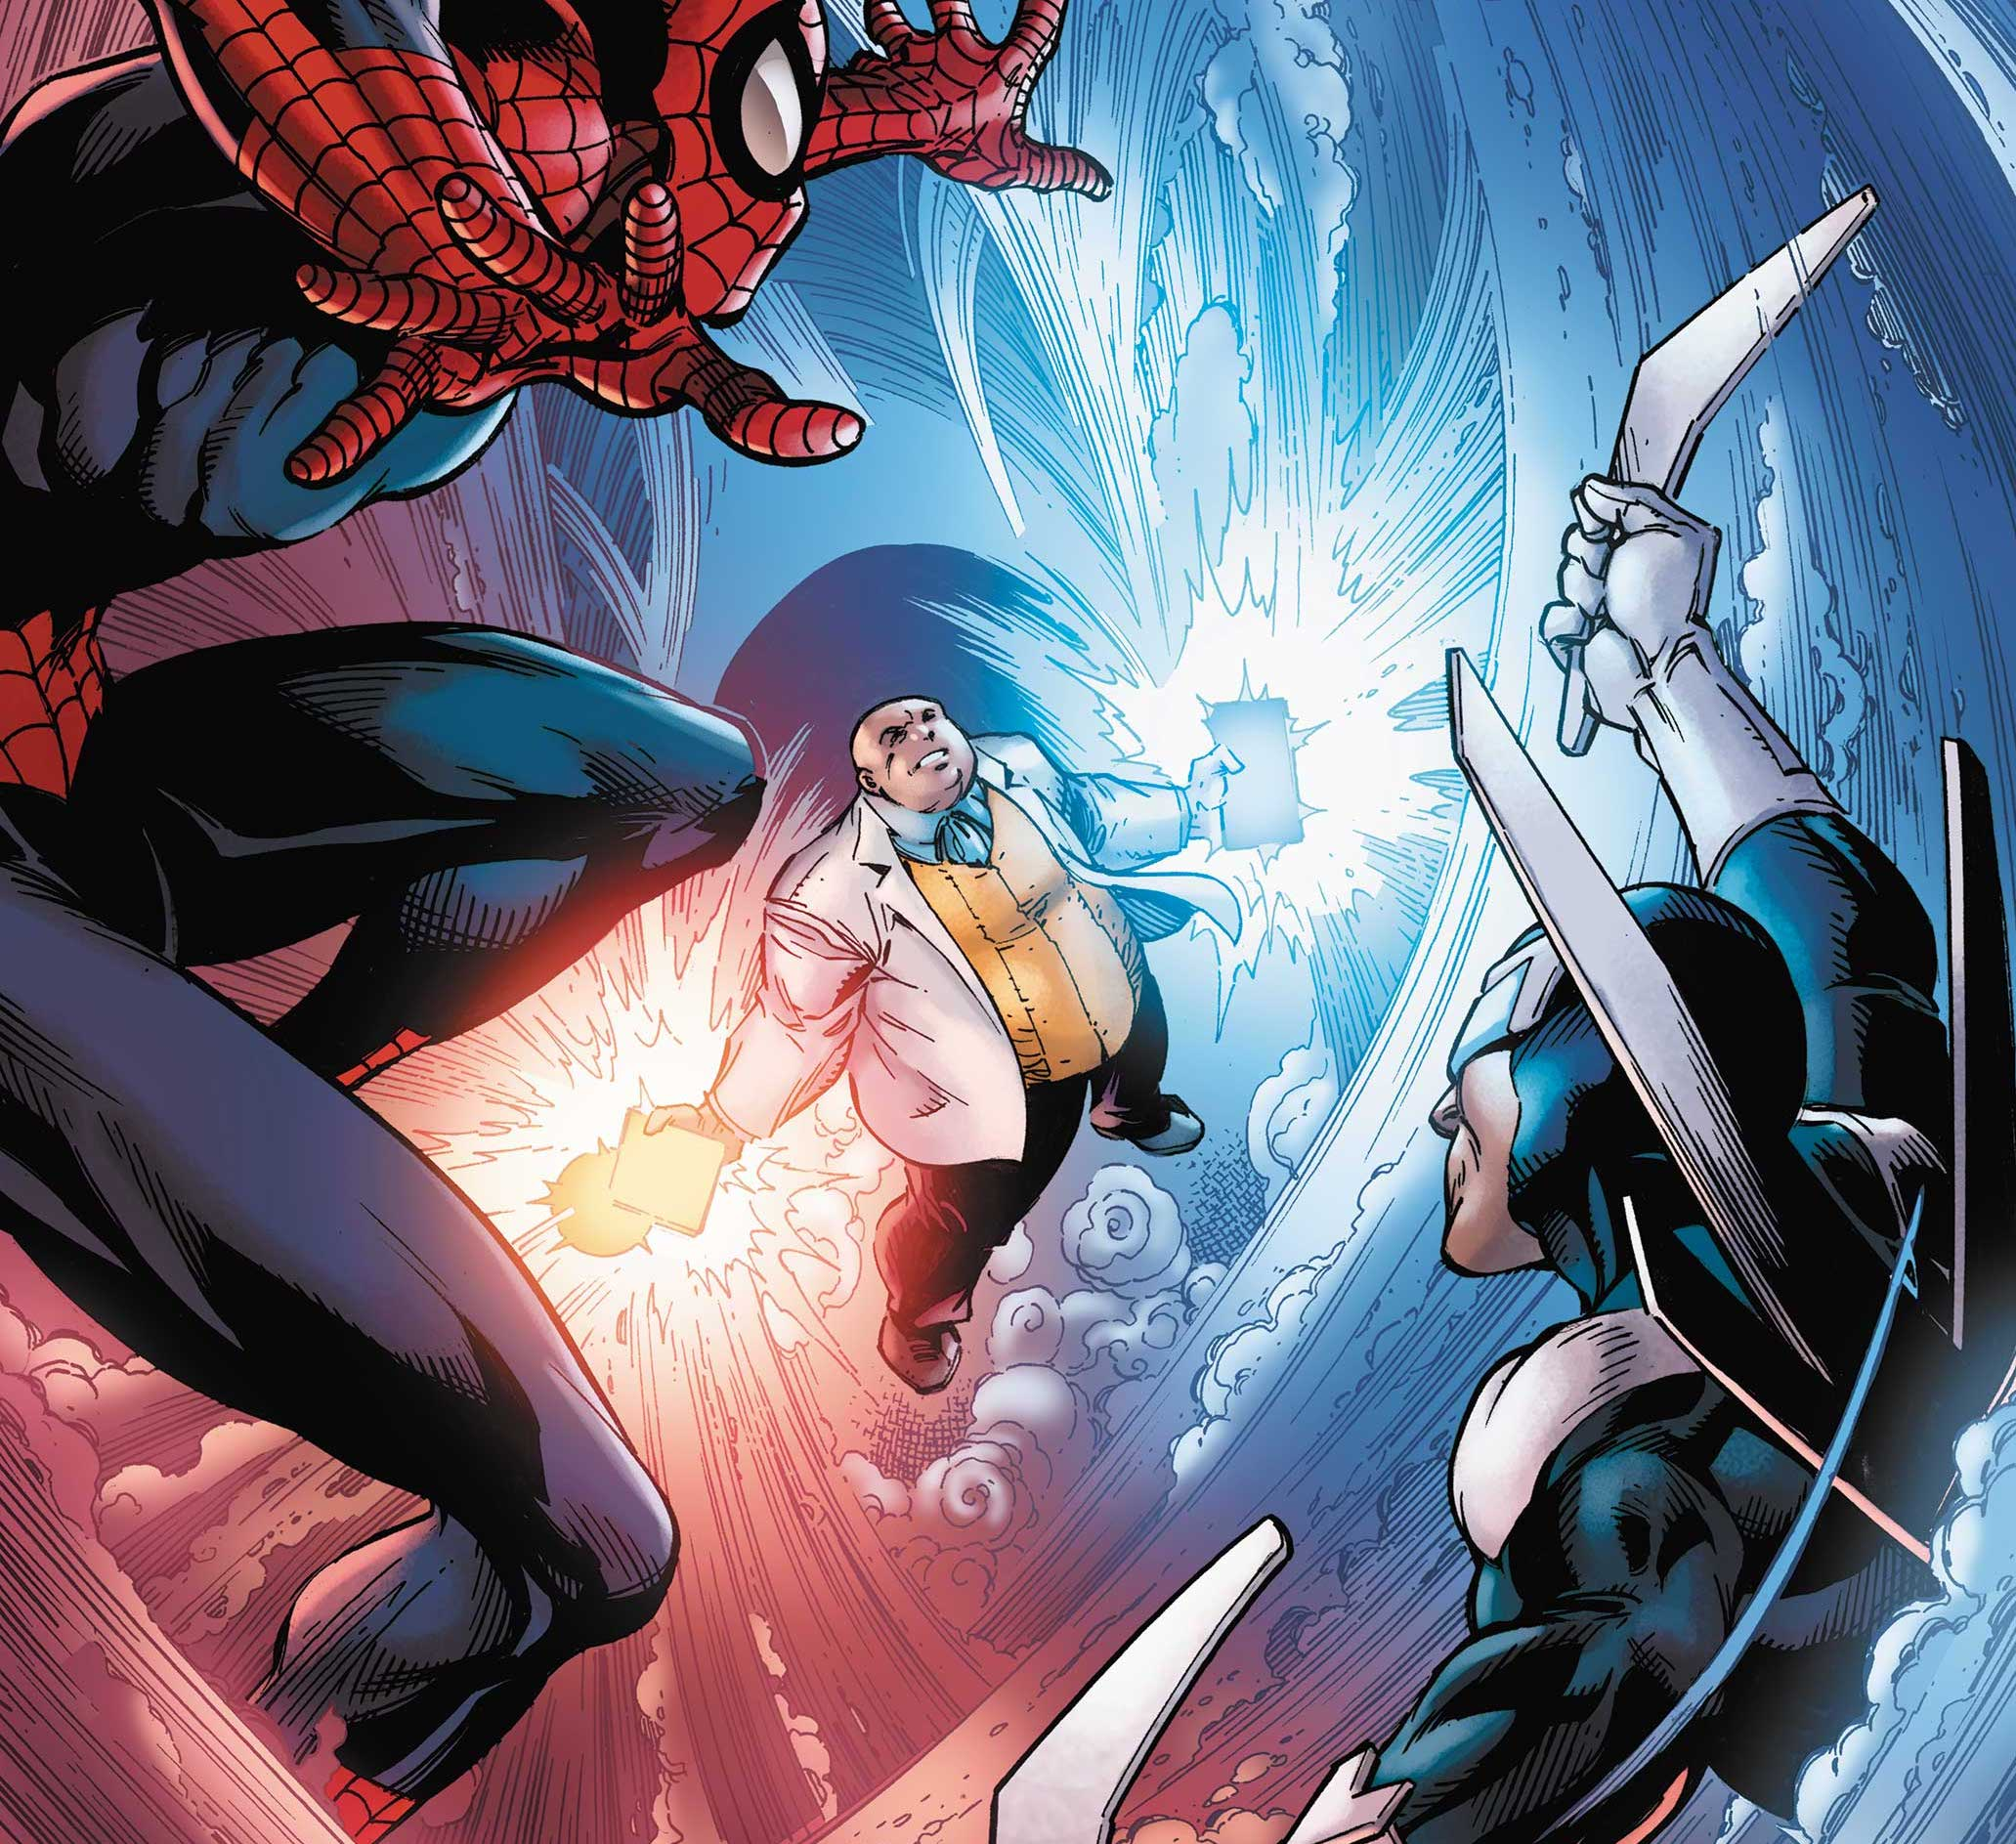 'Giant-Size Amazing Spider-Man: King's Ransom' #1 is filled with reveals